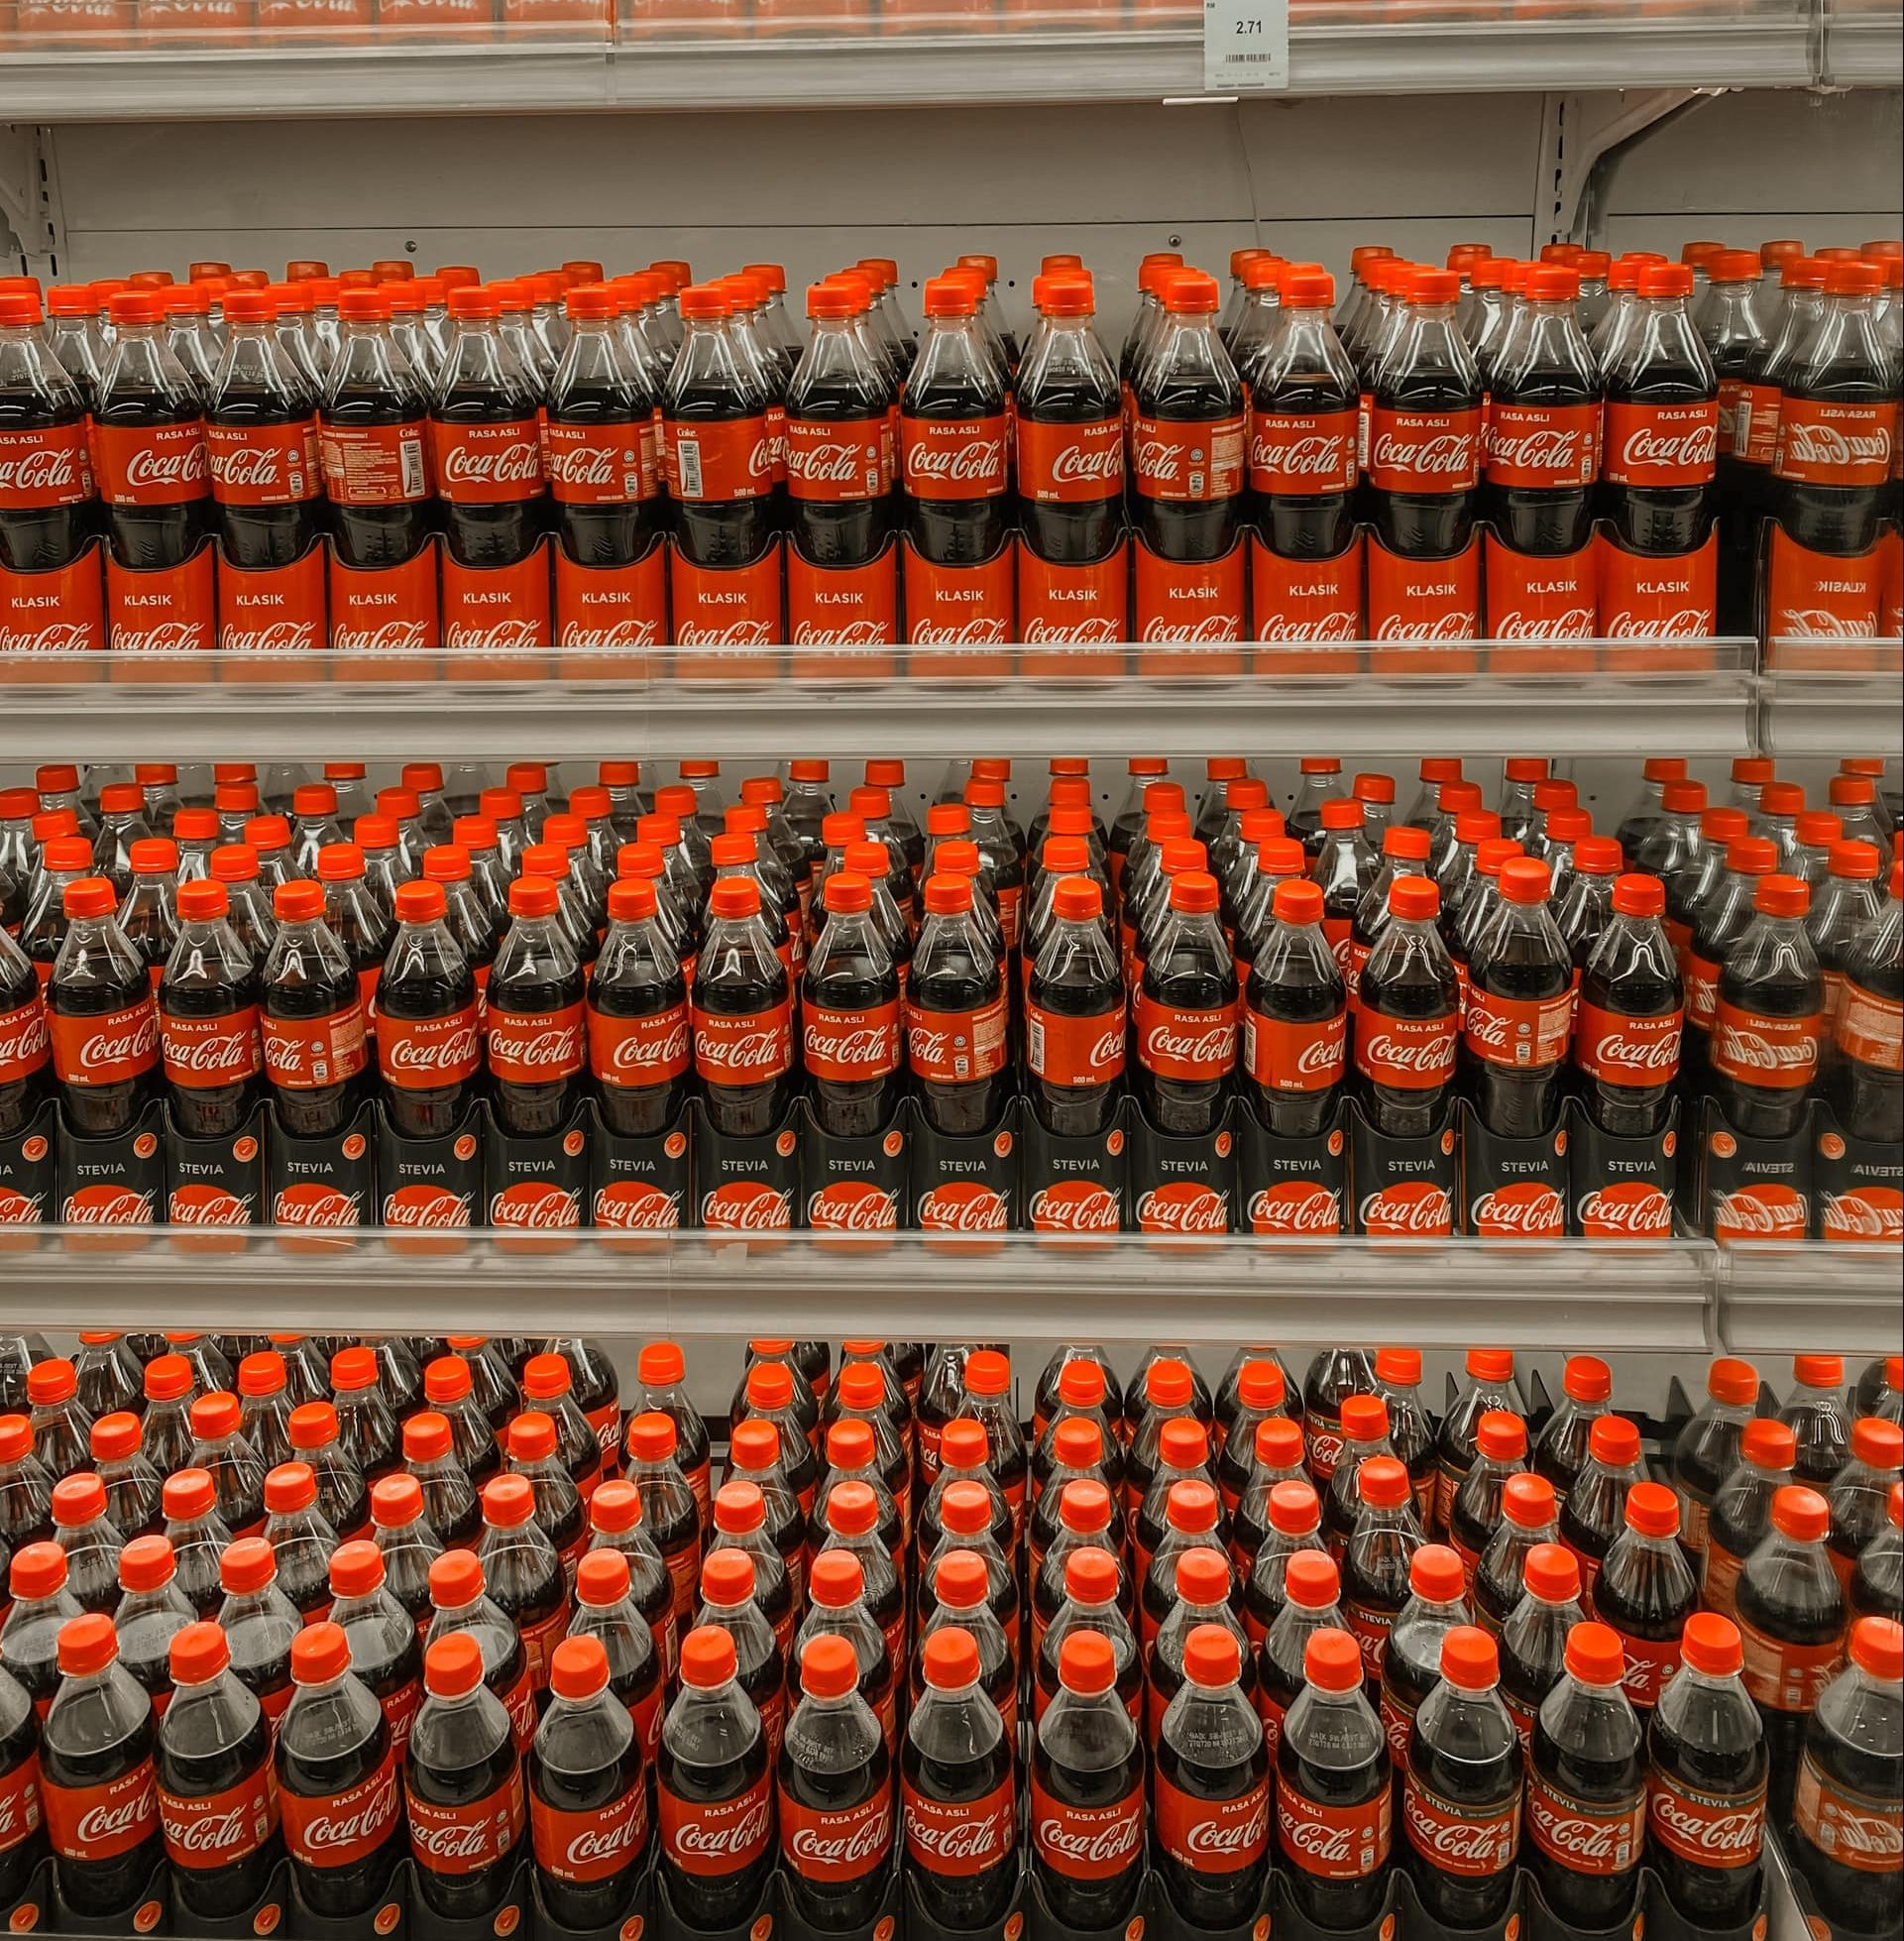 A shelf with drinks from Coca Cola